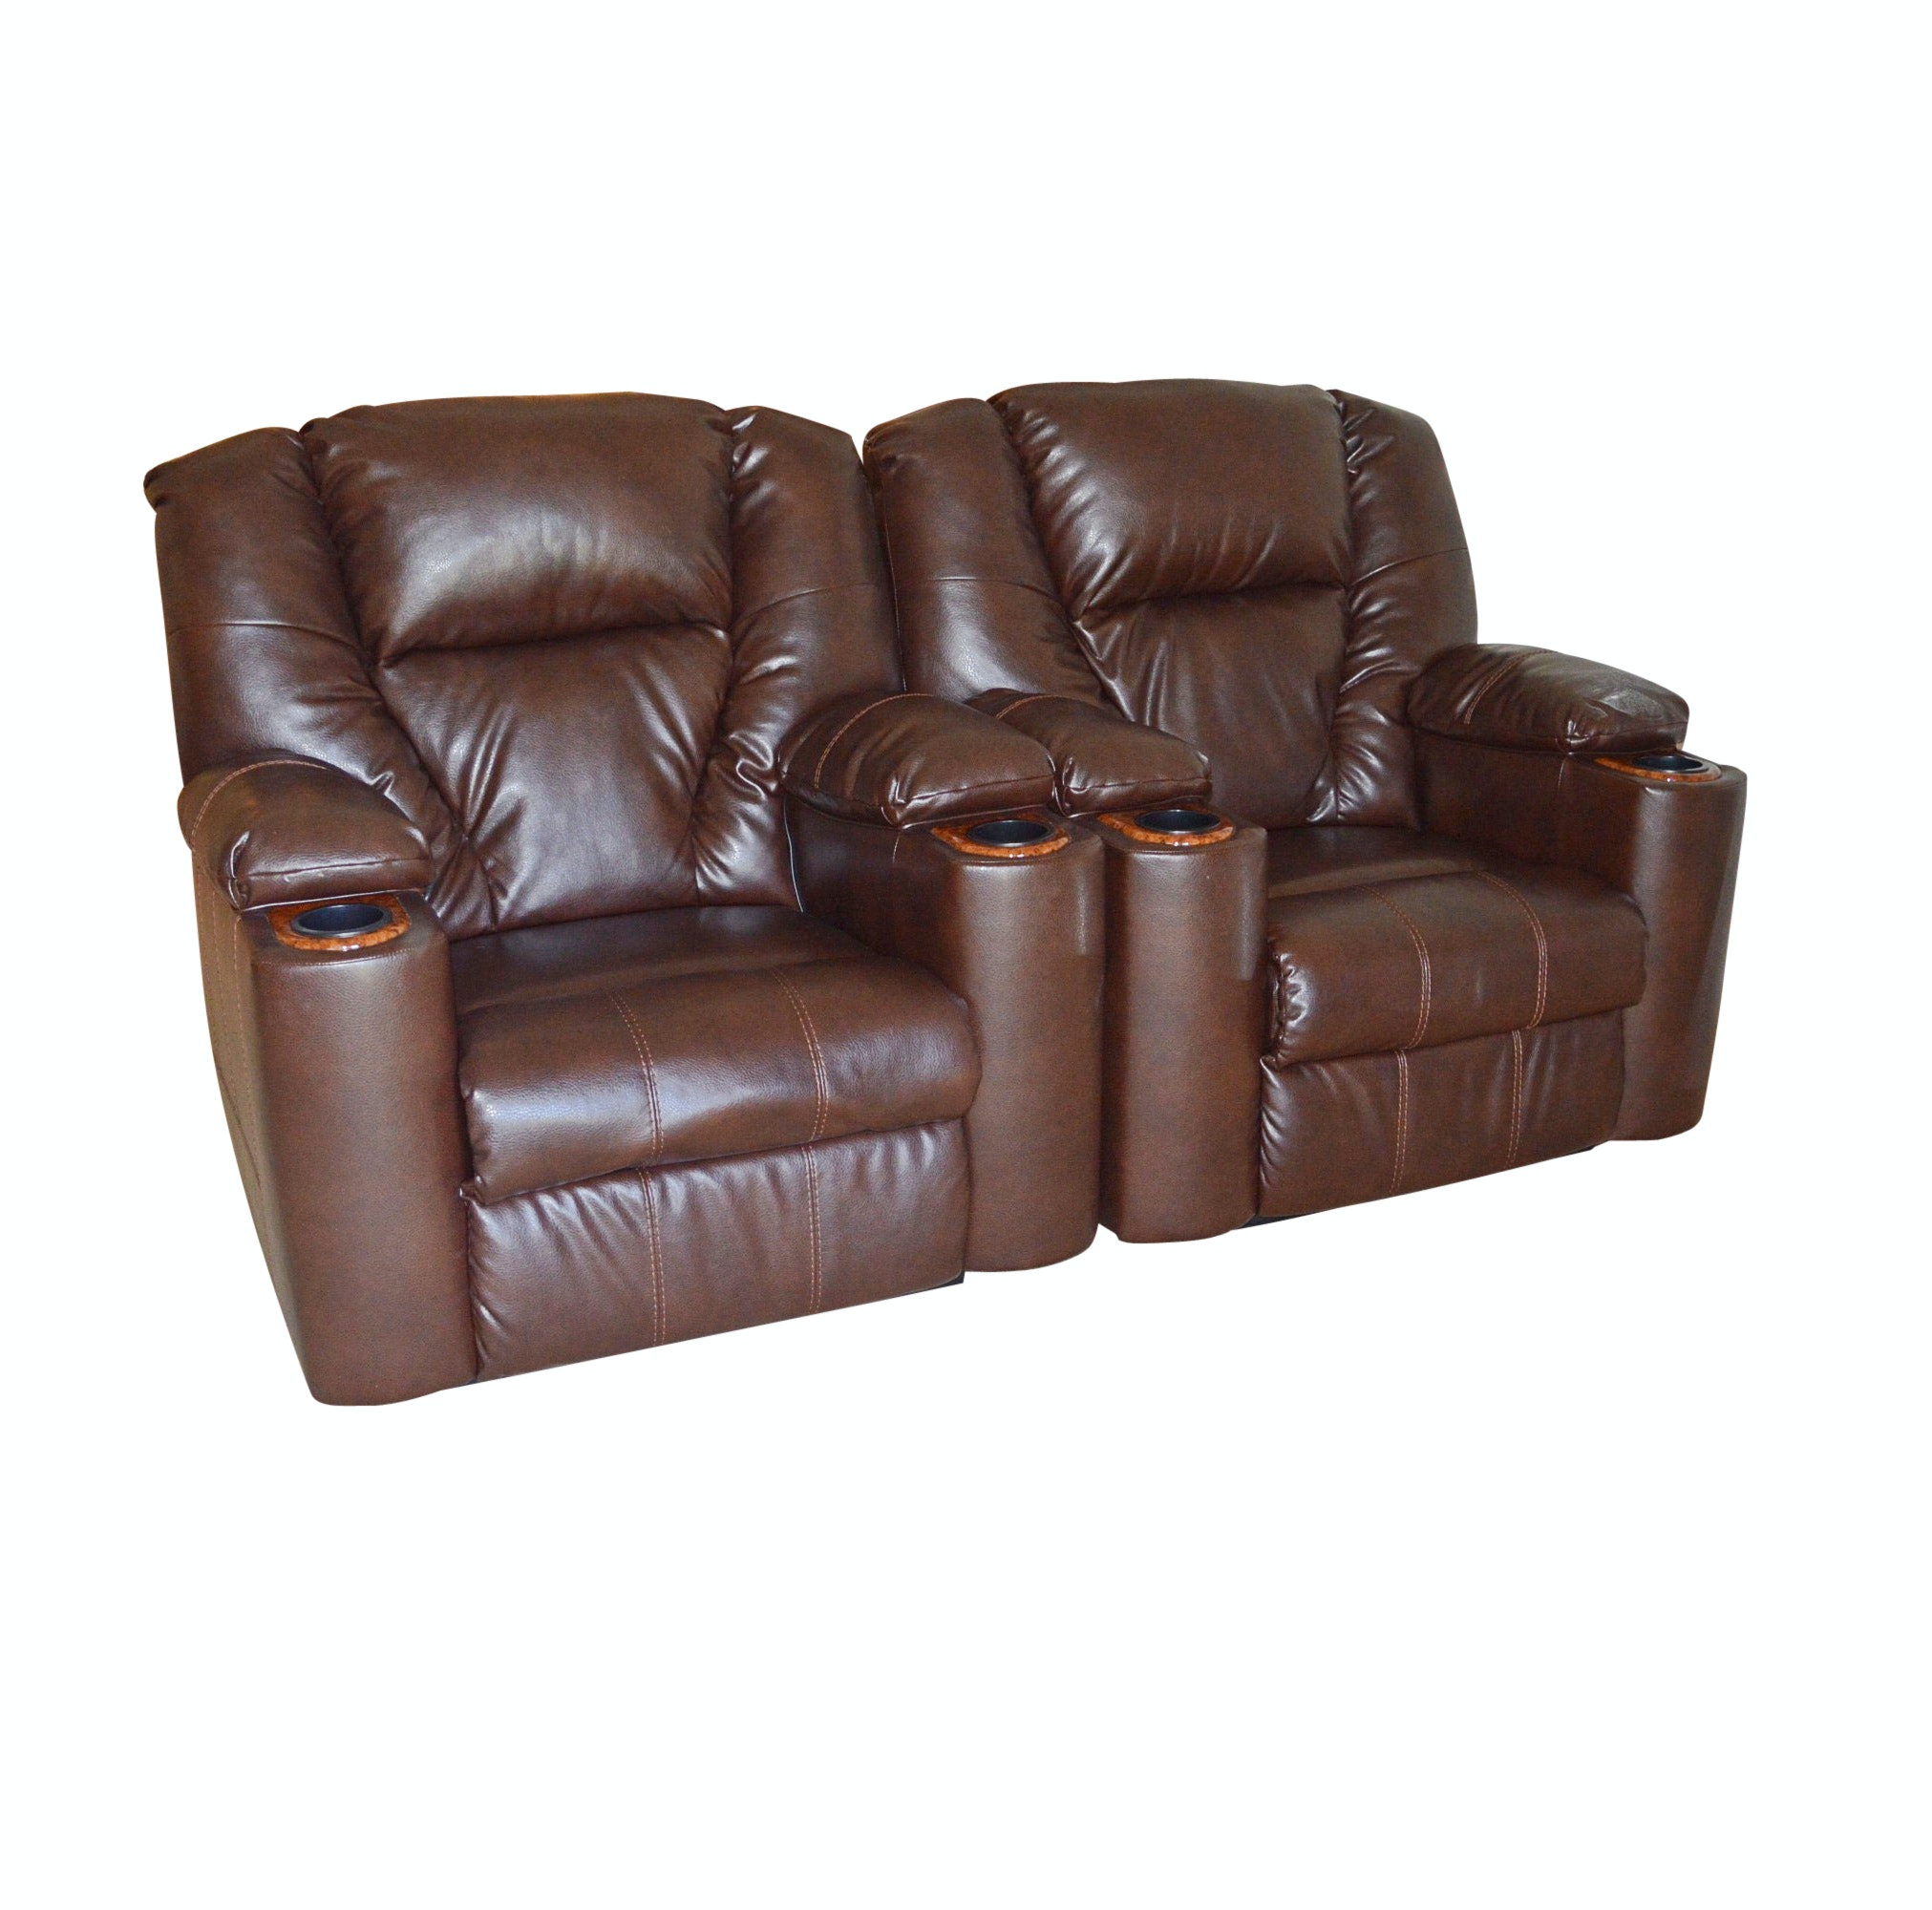 Pair of Reclining Theater Chairs